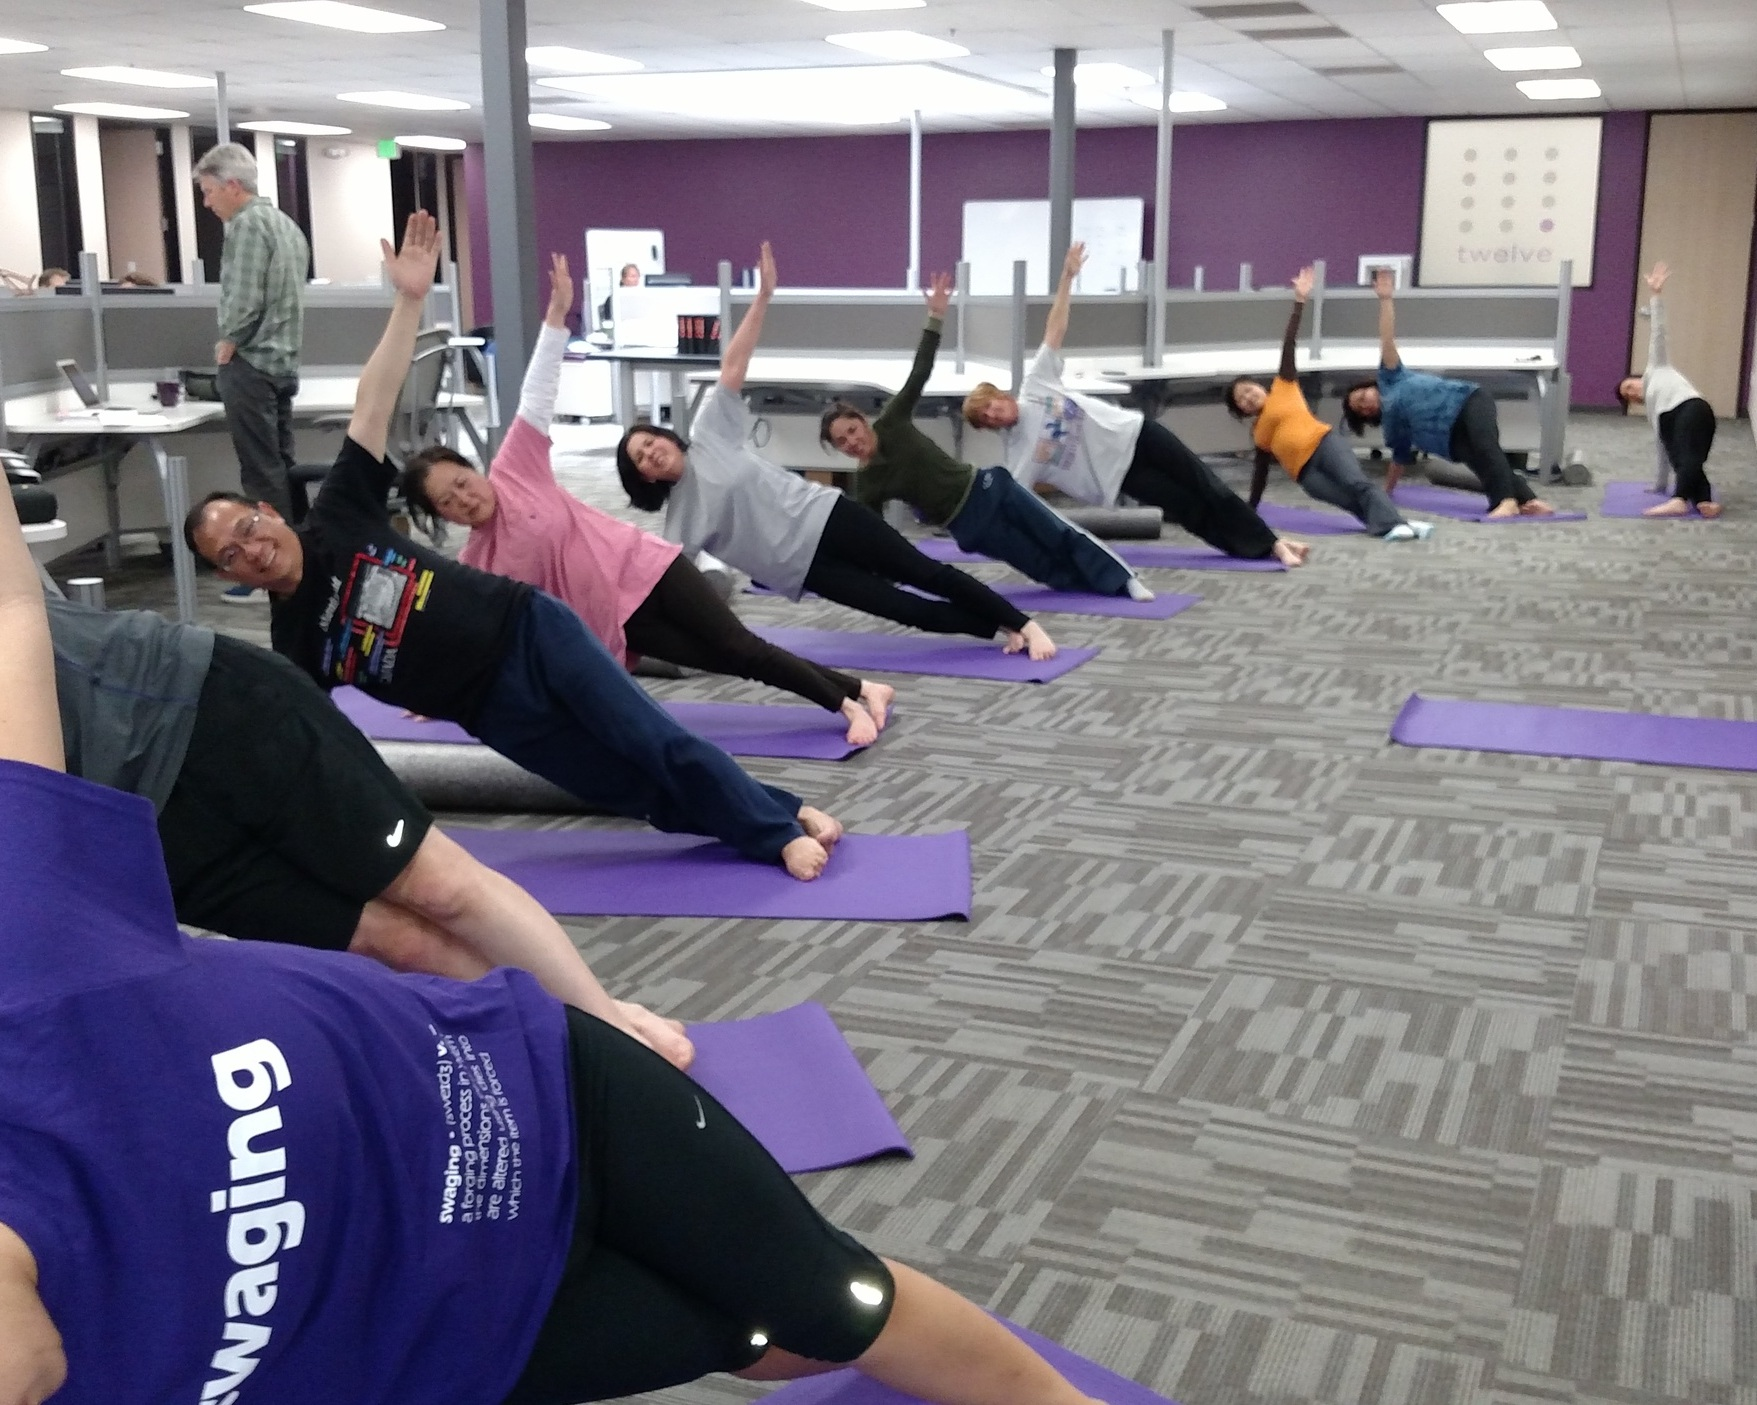 Custom workshops - Small group weekly pilatesSport-specific foundational strength and flexibilityPre/post partum fitnessIntroduction to exerciseIntroduction to pilatesWork ergonomicsInjury prevention in sports or danceYour group's specific interestsFOR INQUIRIES, CLICK HERE